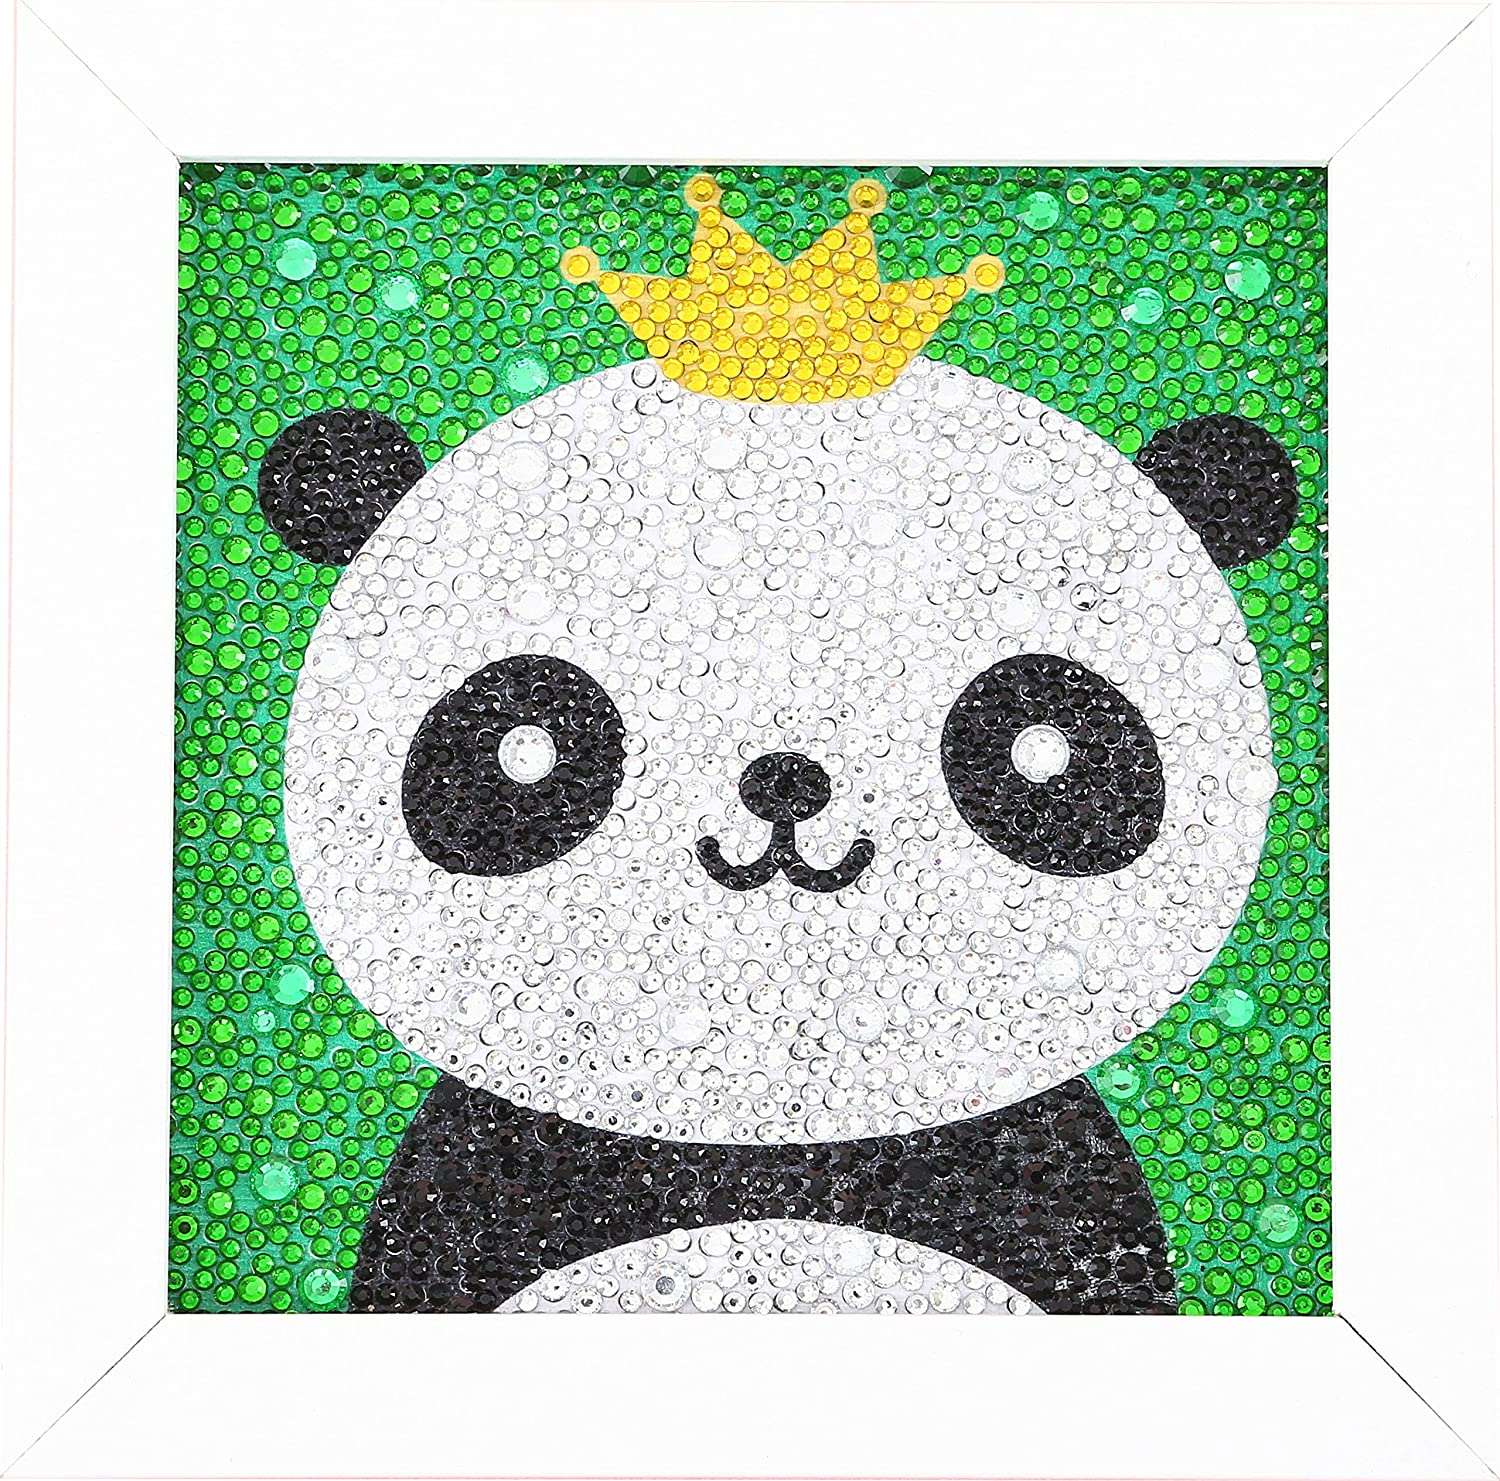 18Pcs 5D DIY Diamond Painting Kits for Kids and Adult Beginners Handmade DIY Diamond Painting Kits Ocean Sea Animal Mosaics Stickers Gift for Kids